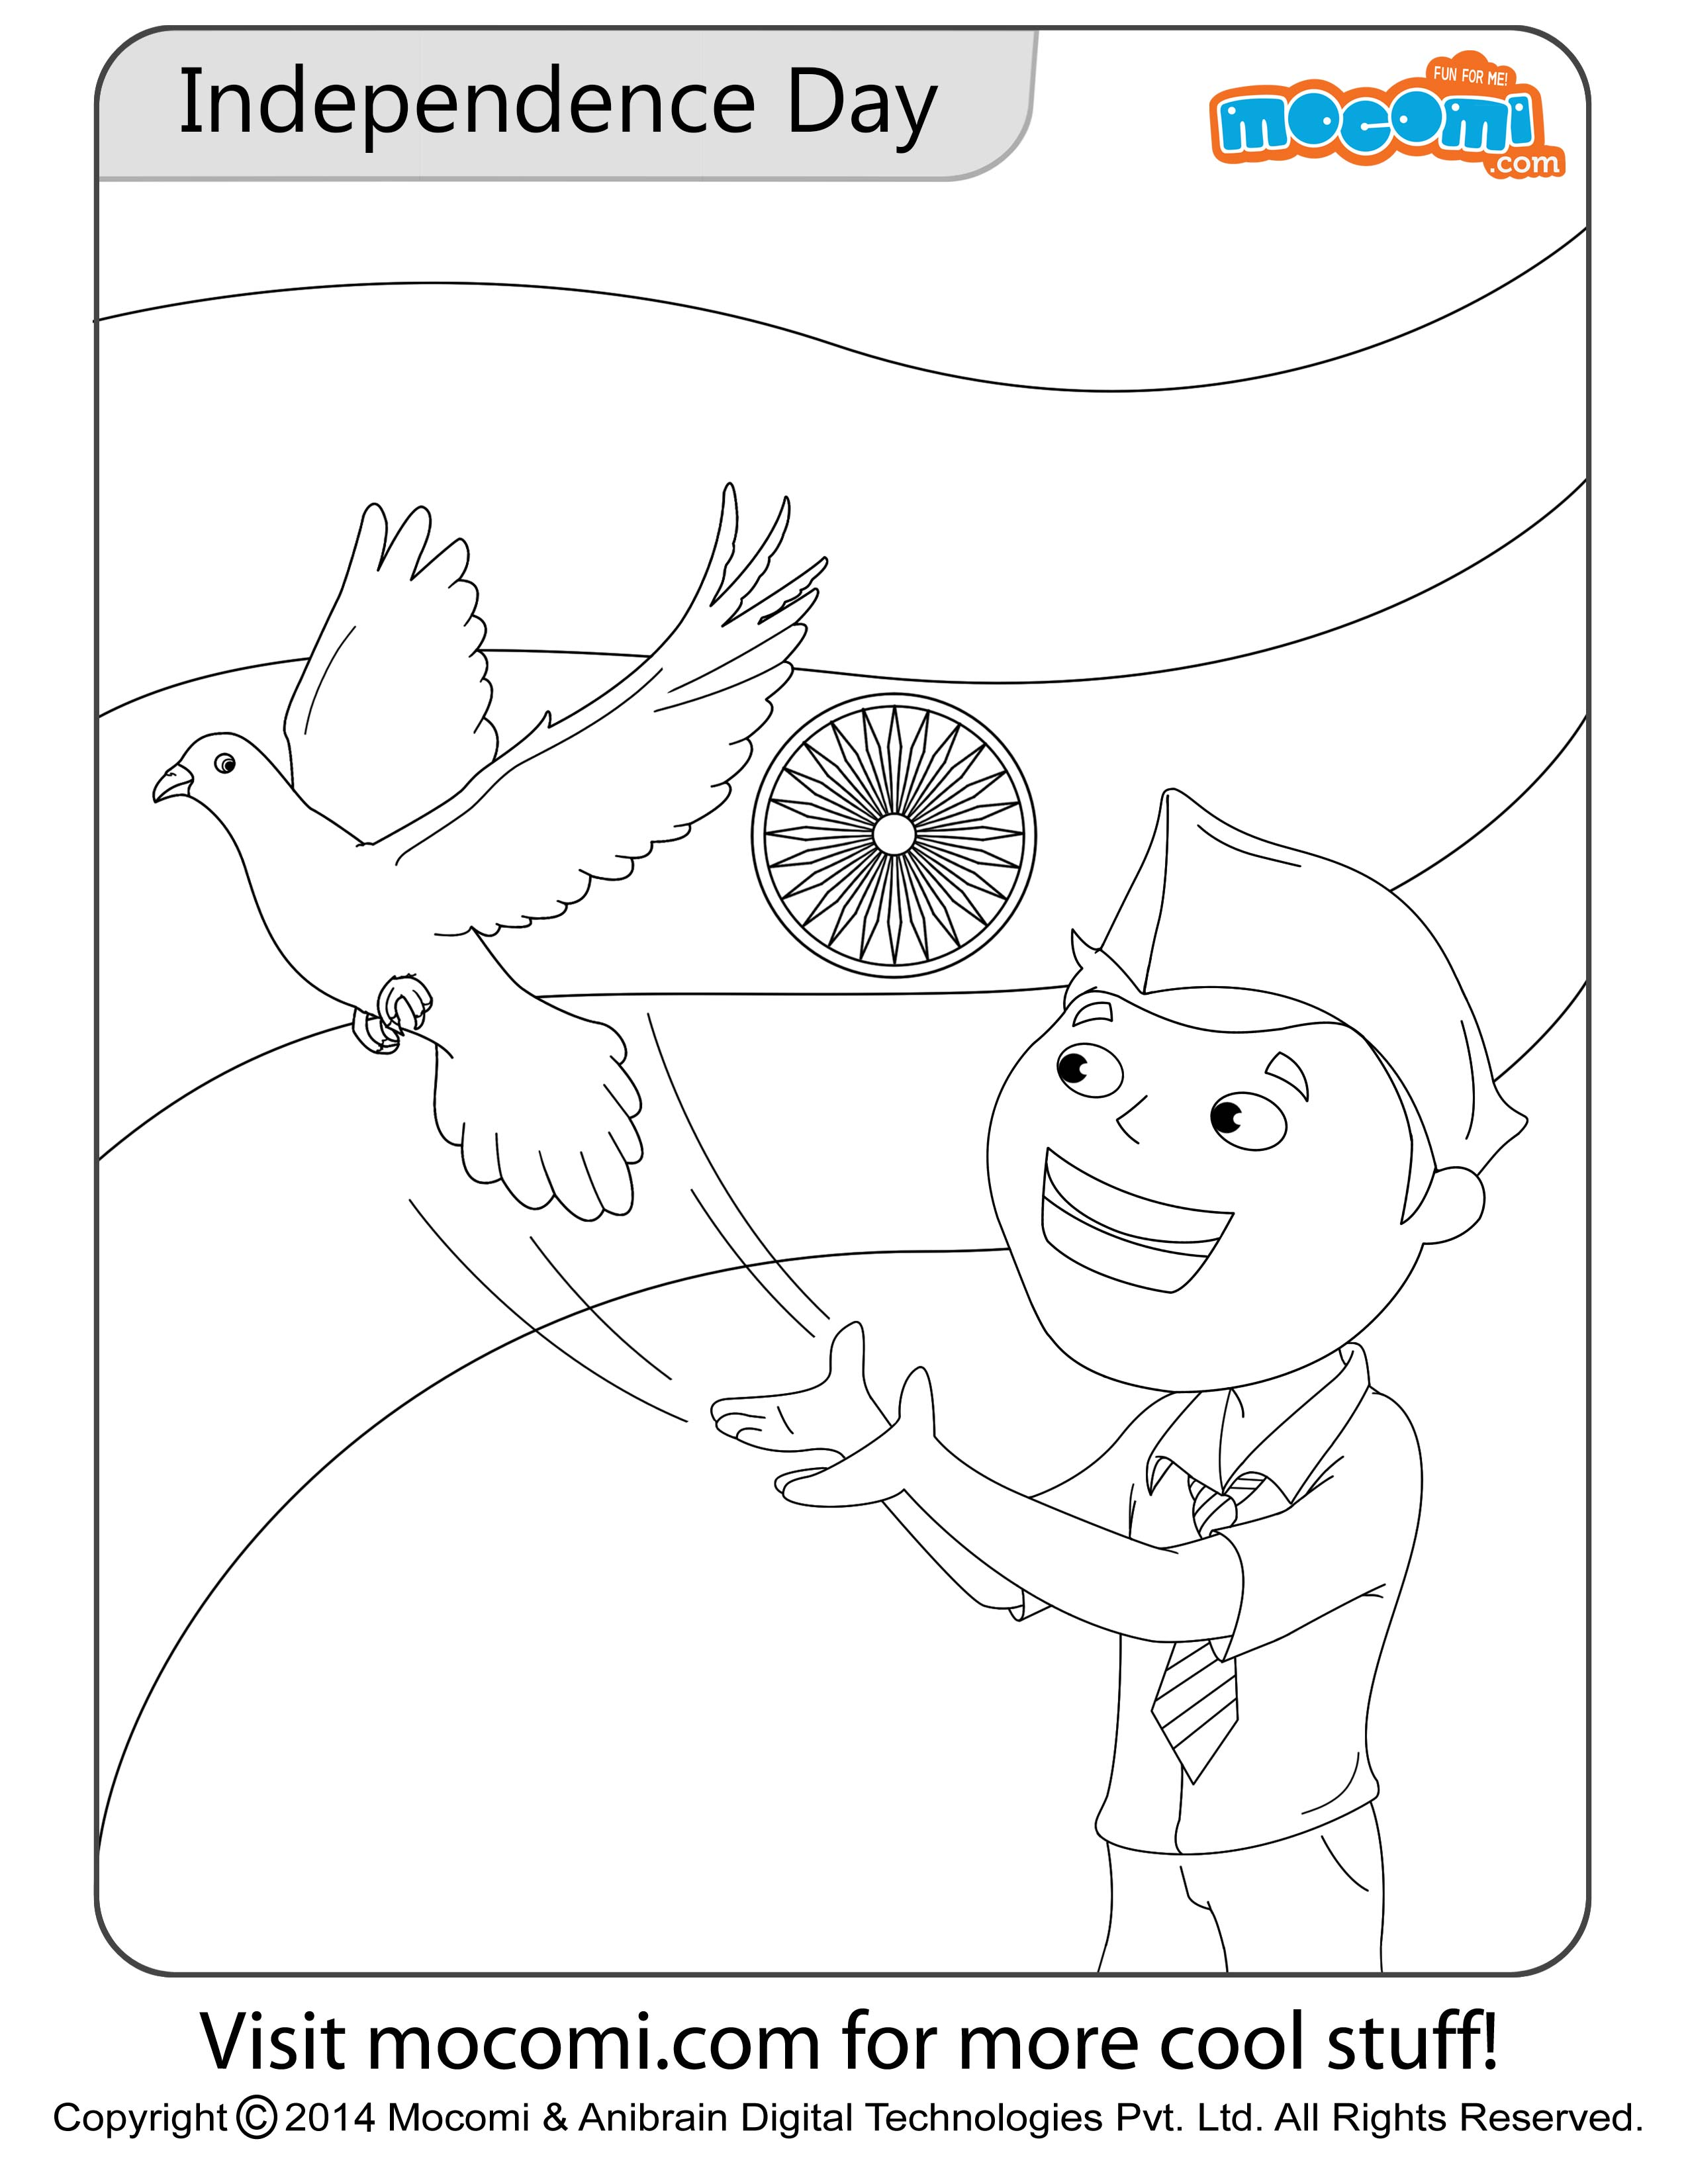 independence day coloring pictures july 4th doodle independence day coloring pages printable pictures coloring day independence